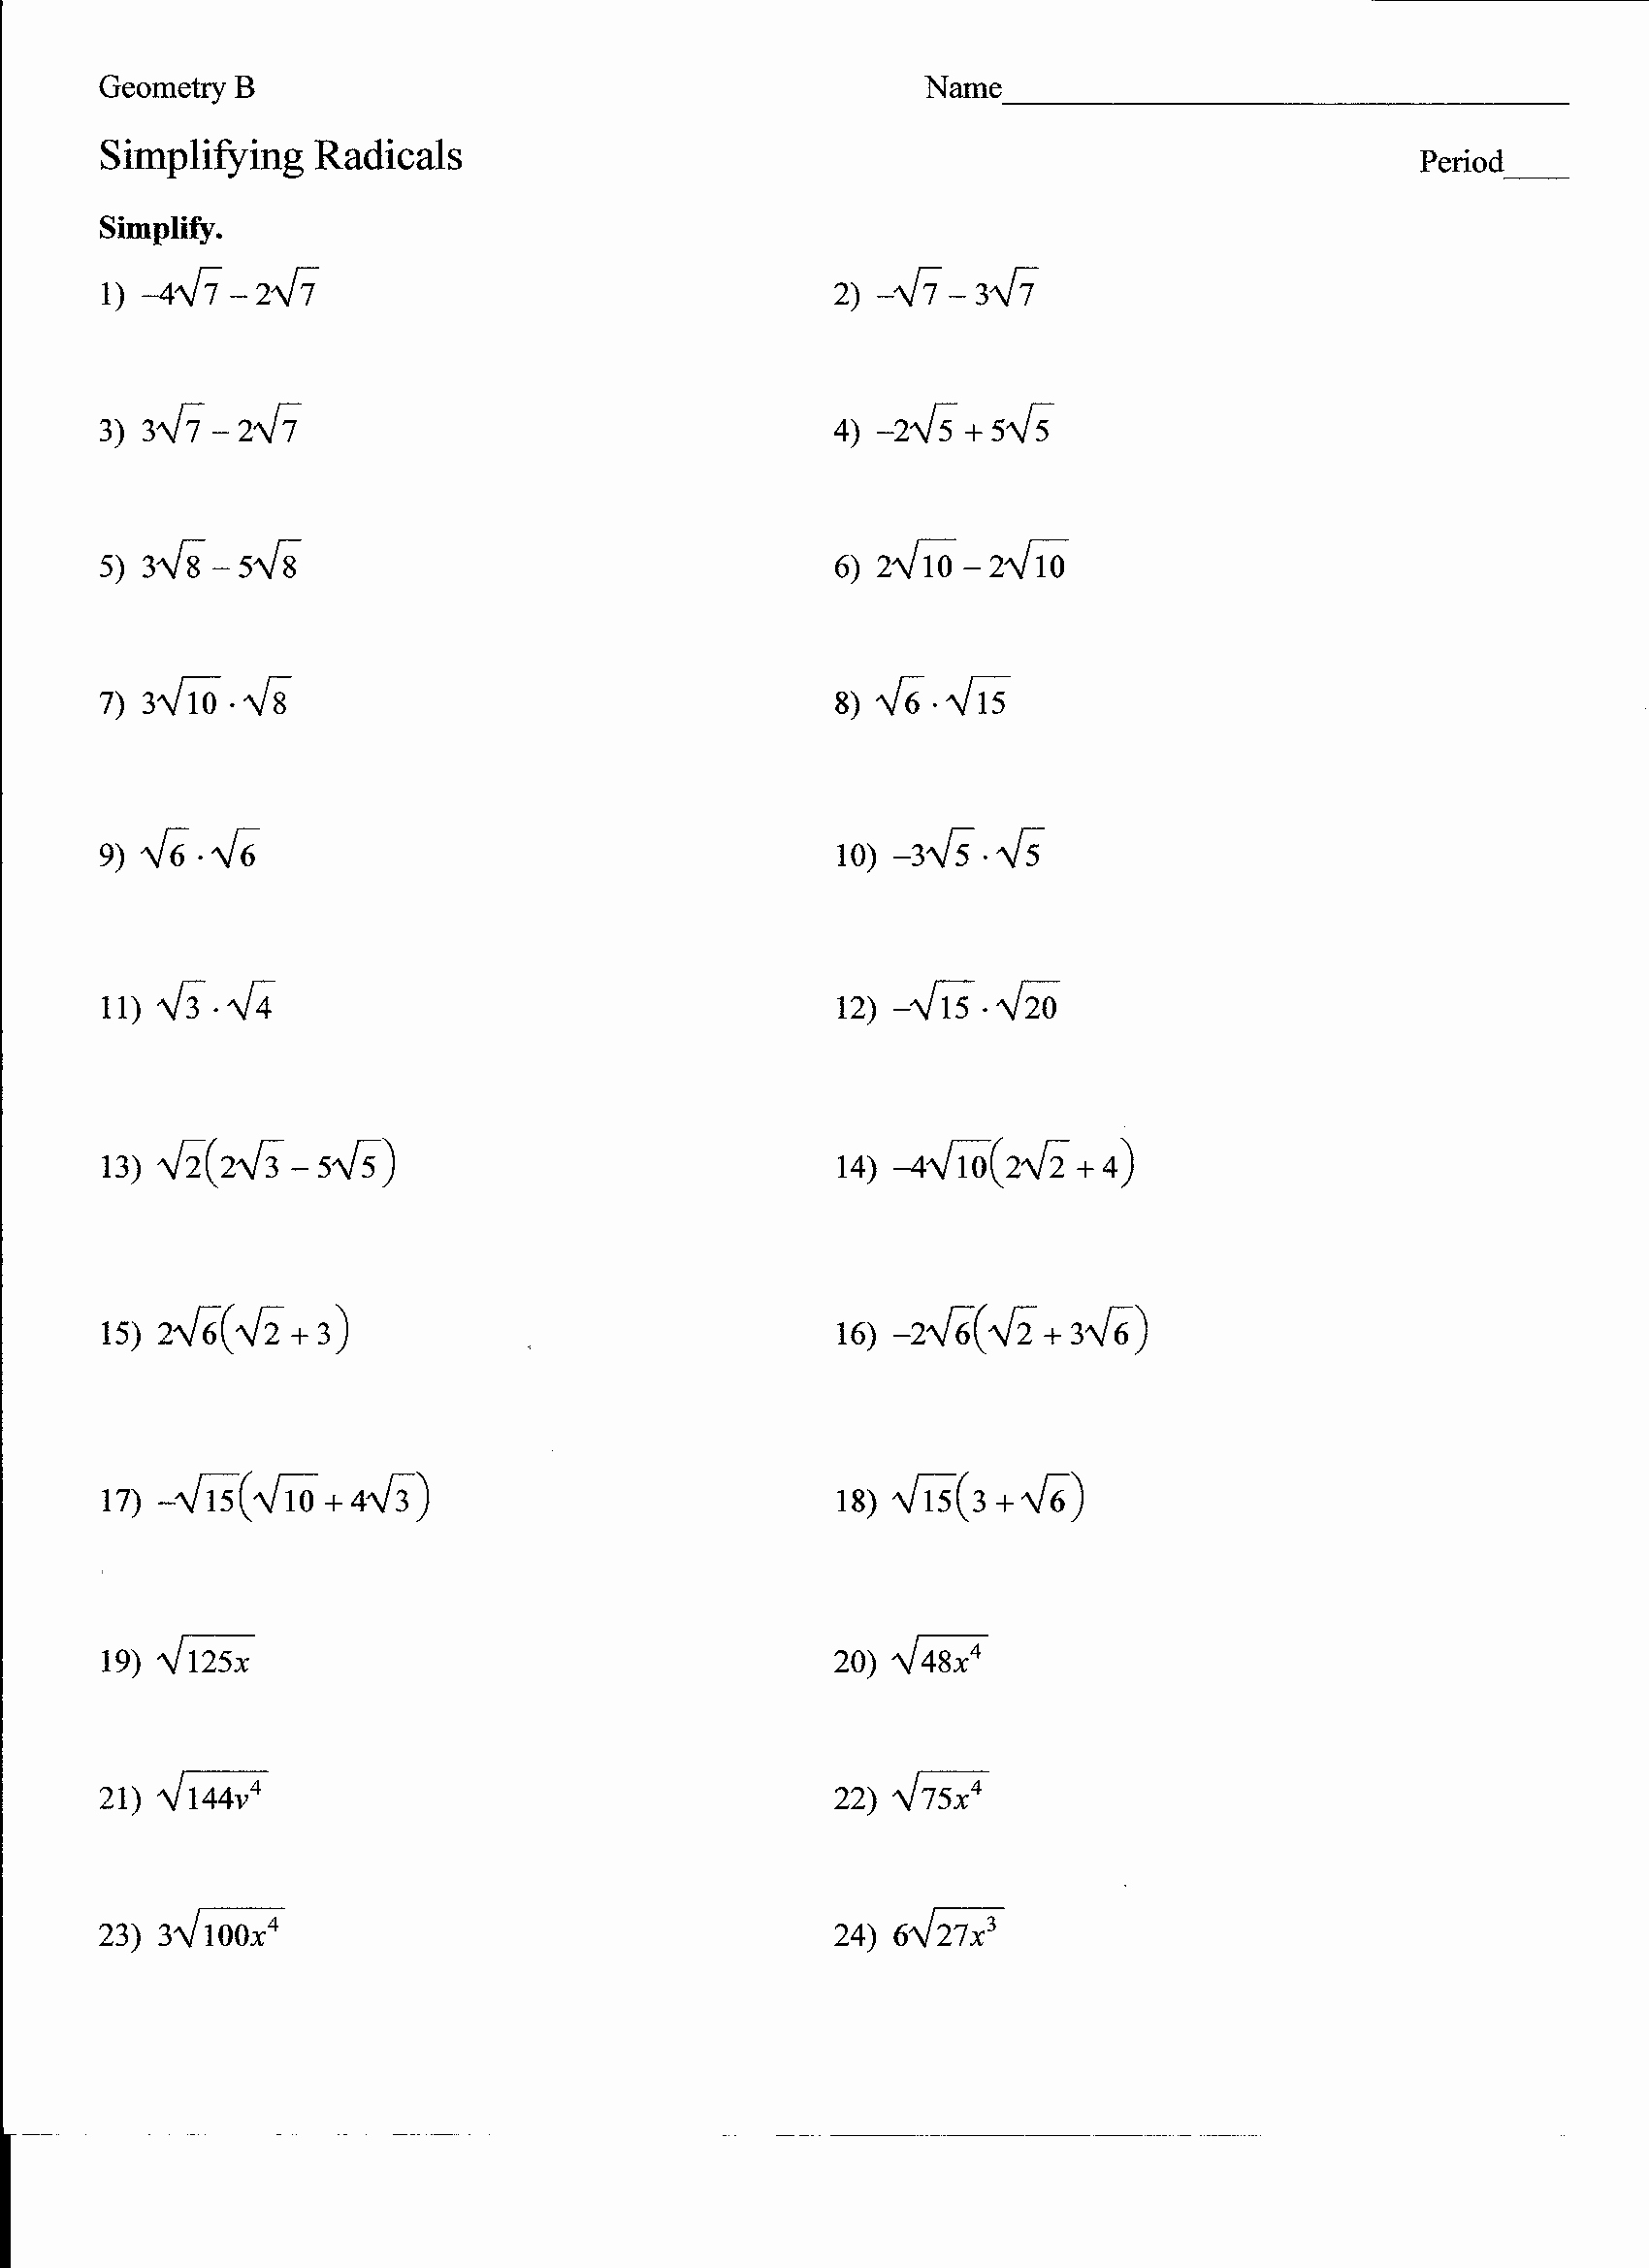 50 Simplifying Radicals Worksheet 1